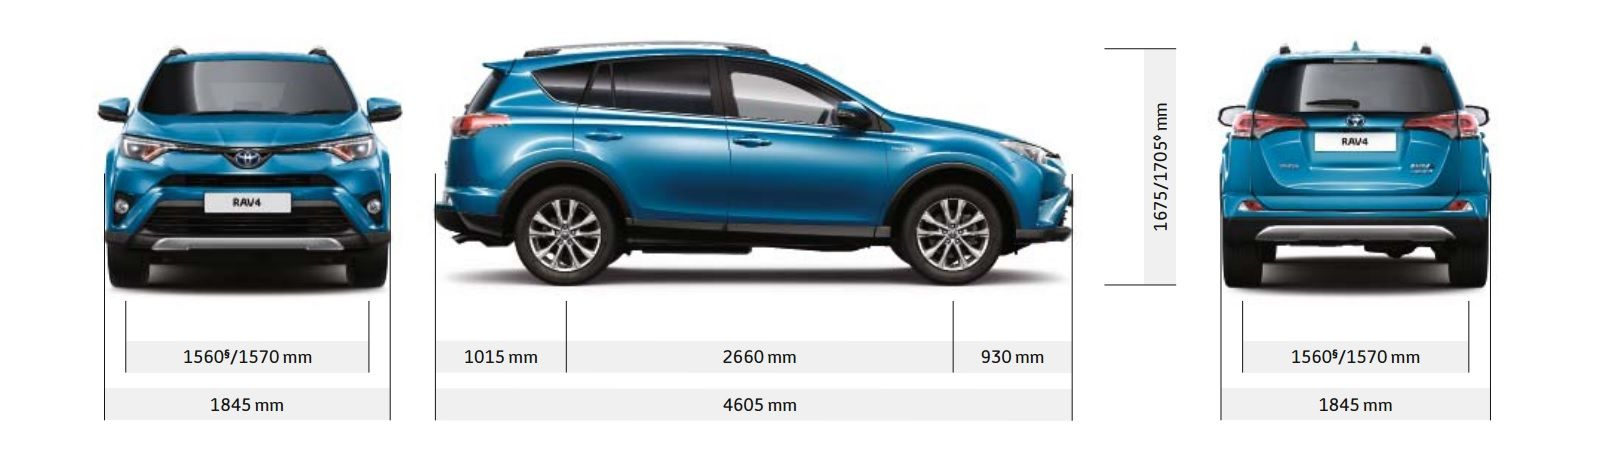 Toyota Hybrid Suv 2017 >> Toyota RAV4 and Hybrid sizes and dimensions guide | carwow